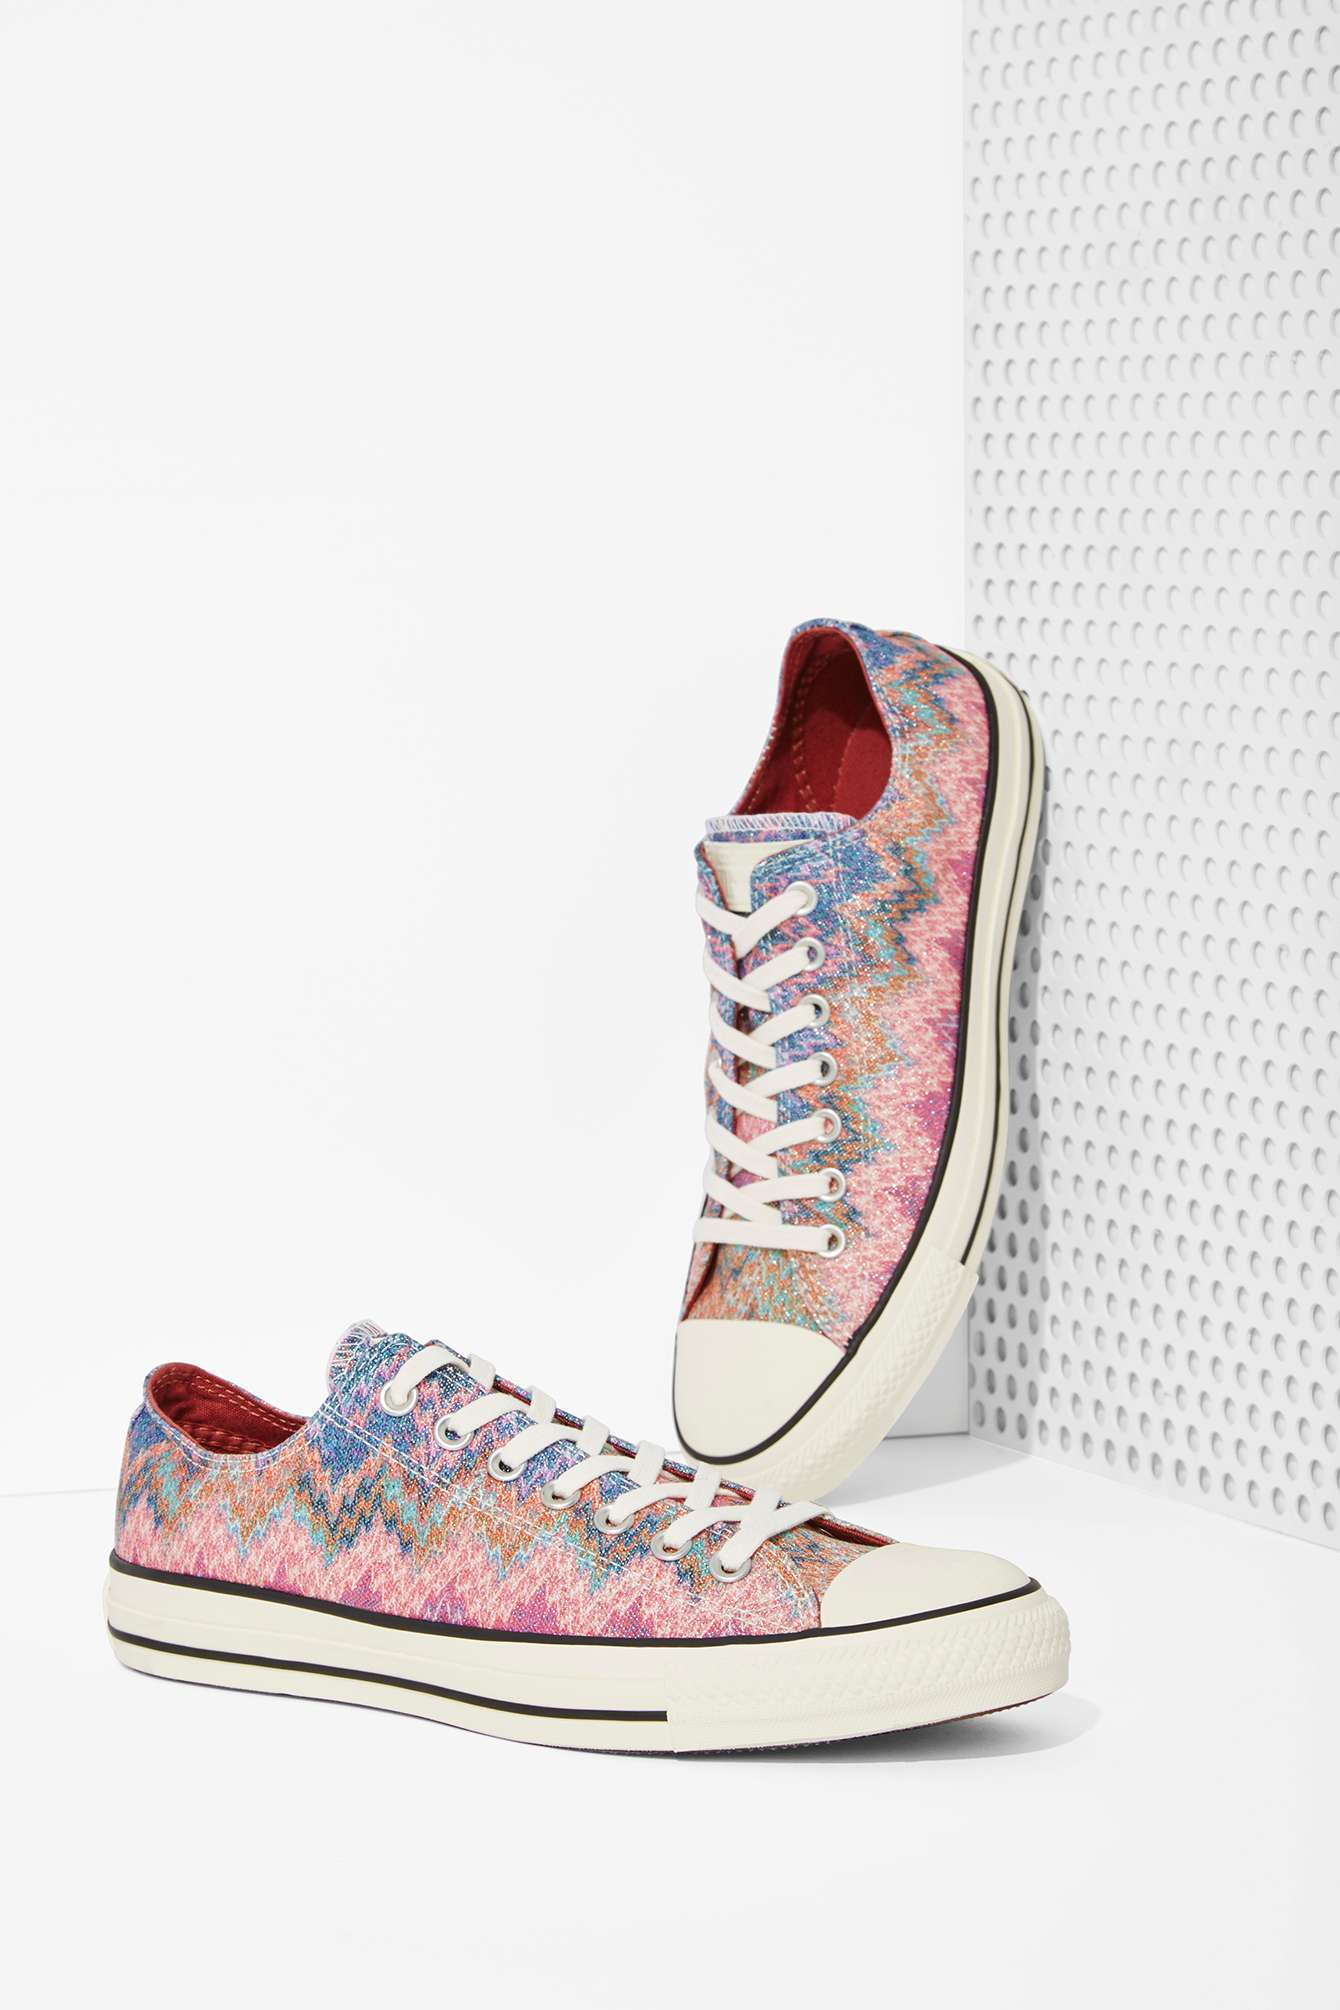 3993437131326a Lyst - Nasty Gal Missoni X Converse All Star Low-top Sneaker